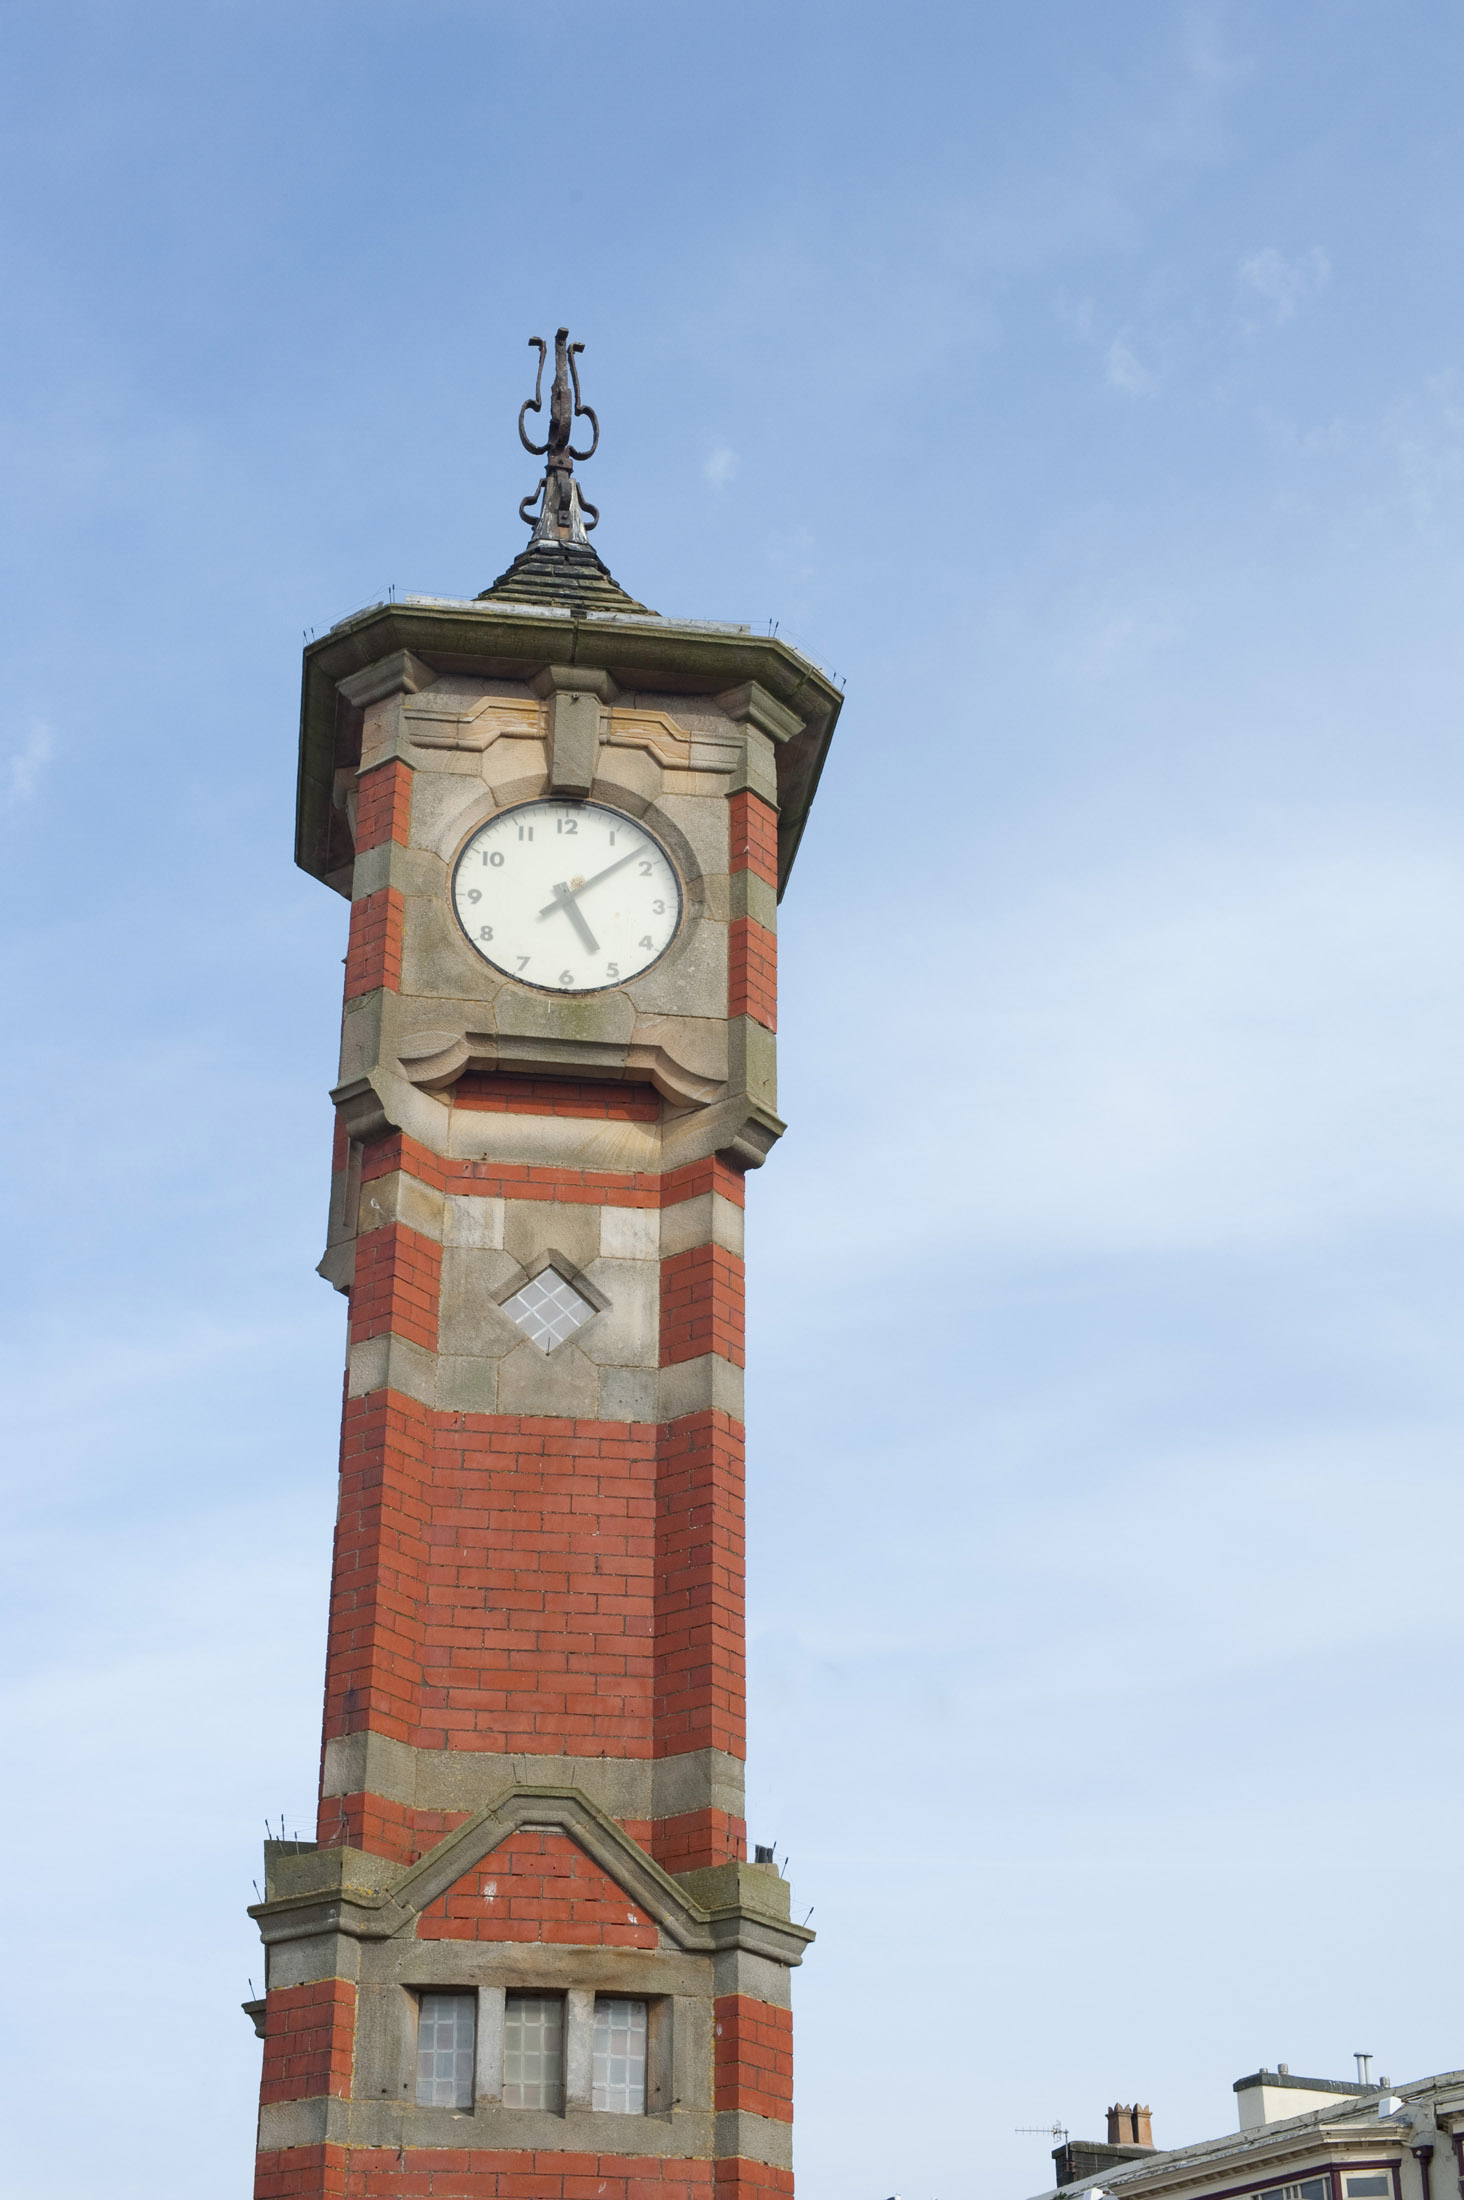 landmark clock tower on morecambe seafront